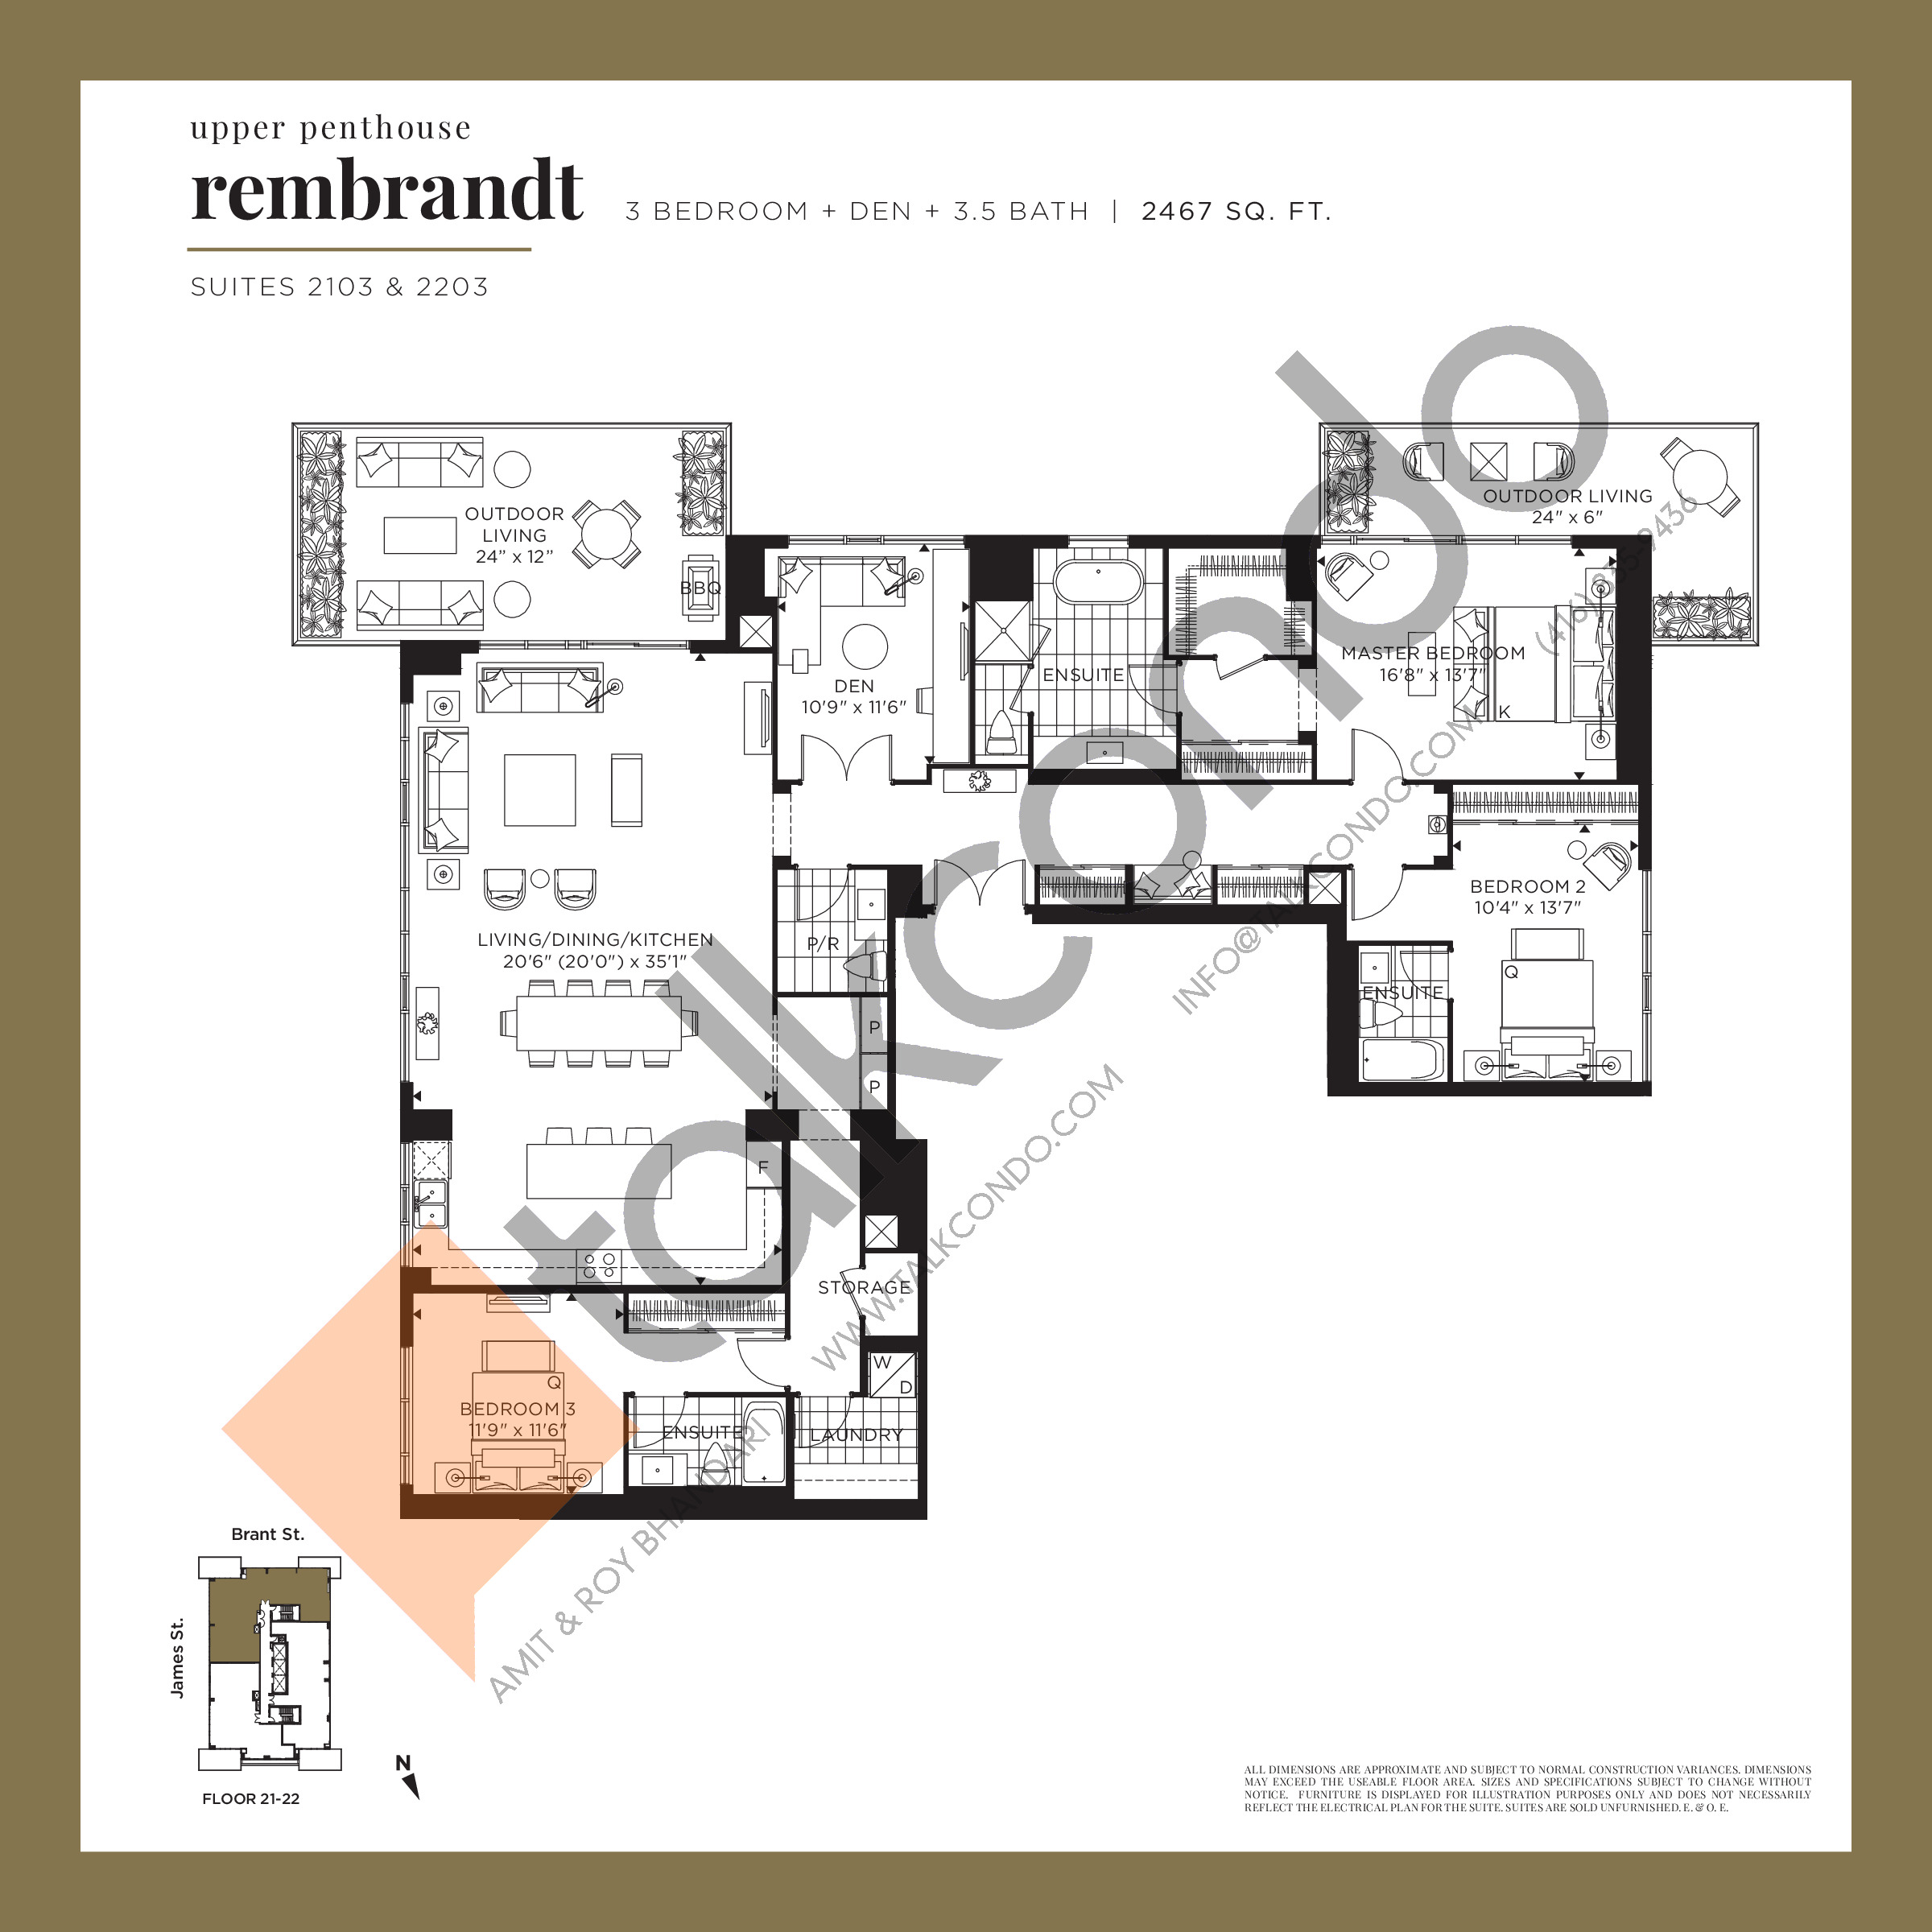 Rembrandt (Upper Penthouse) Floor Plan at Gallery Condos and Lofts - 2467 sq.ft